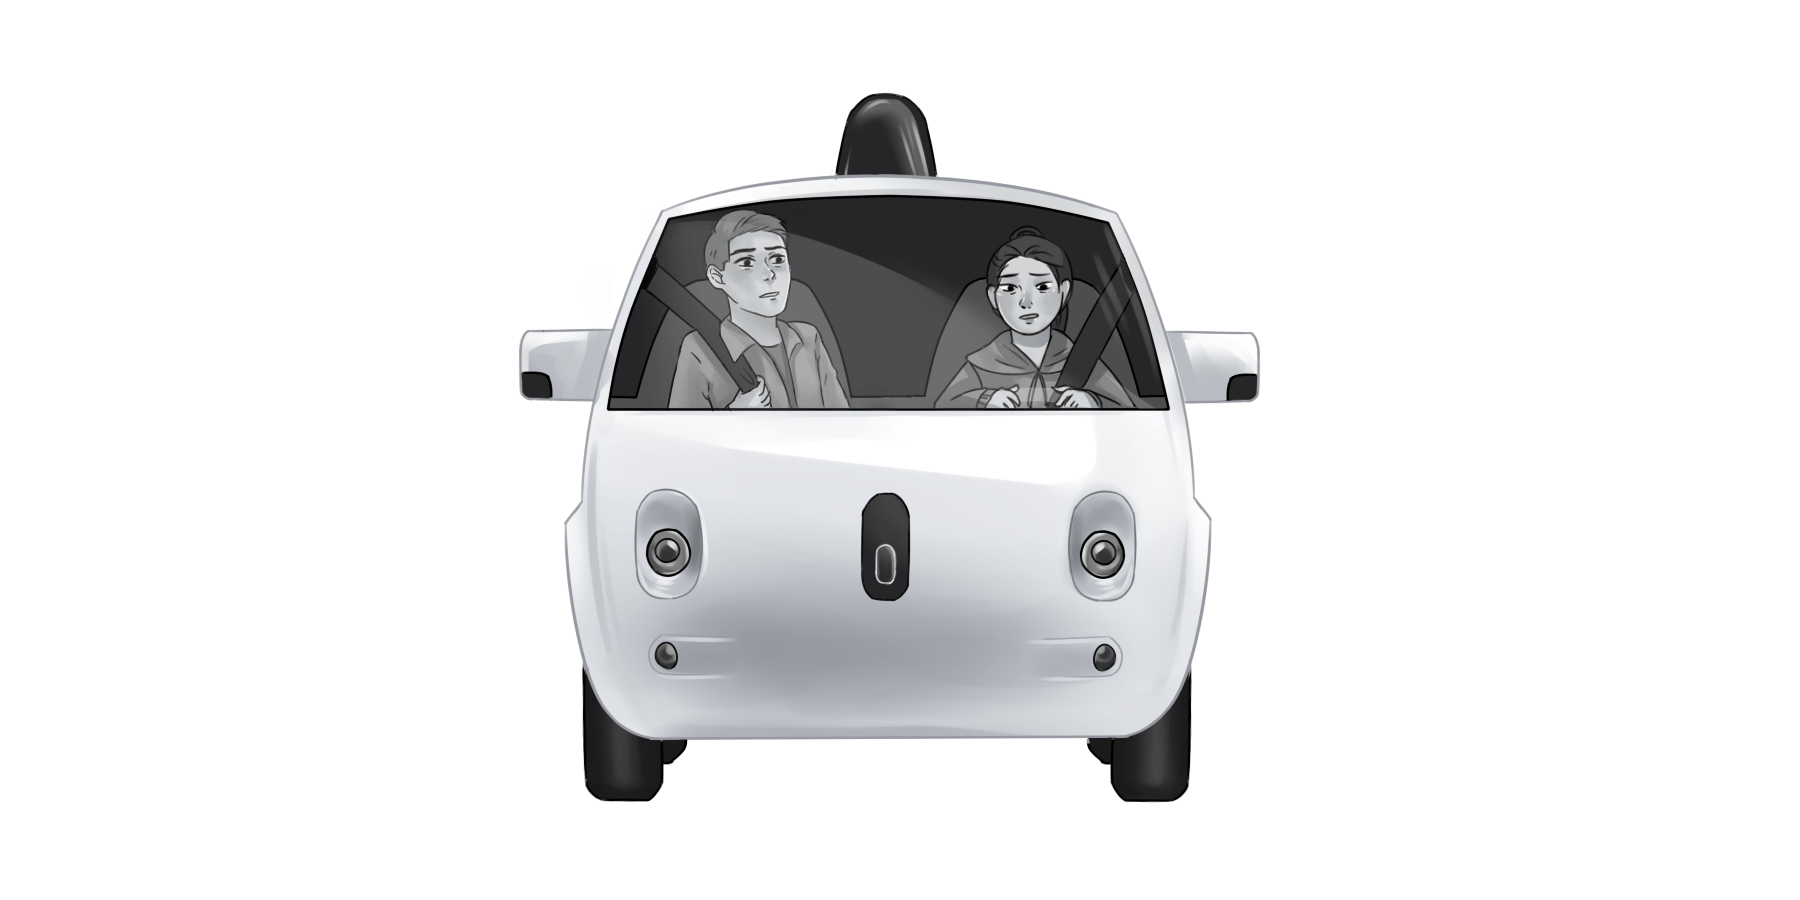 Driving in a car clipart clipart black and white Self-driving car illustration PNG Clipart - Download free images in PNG clipart black and white